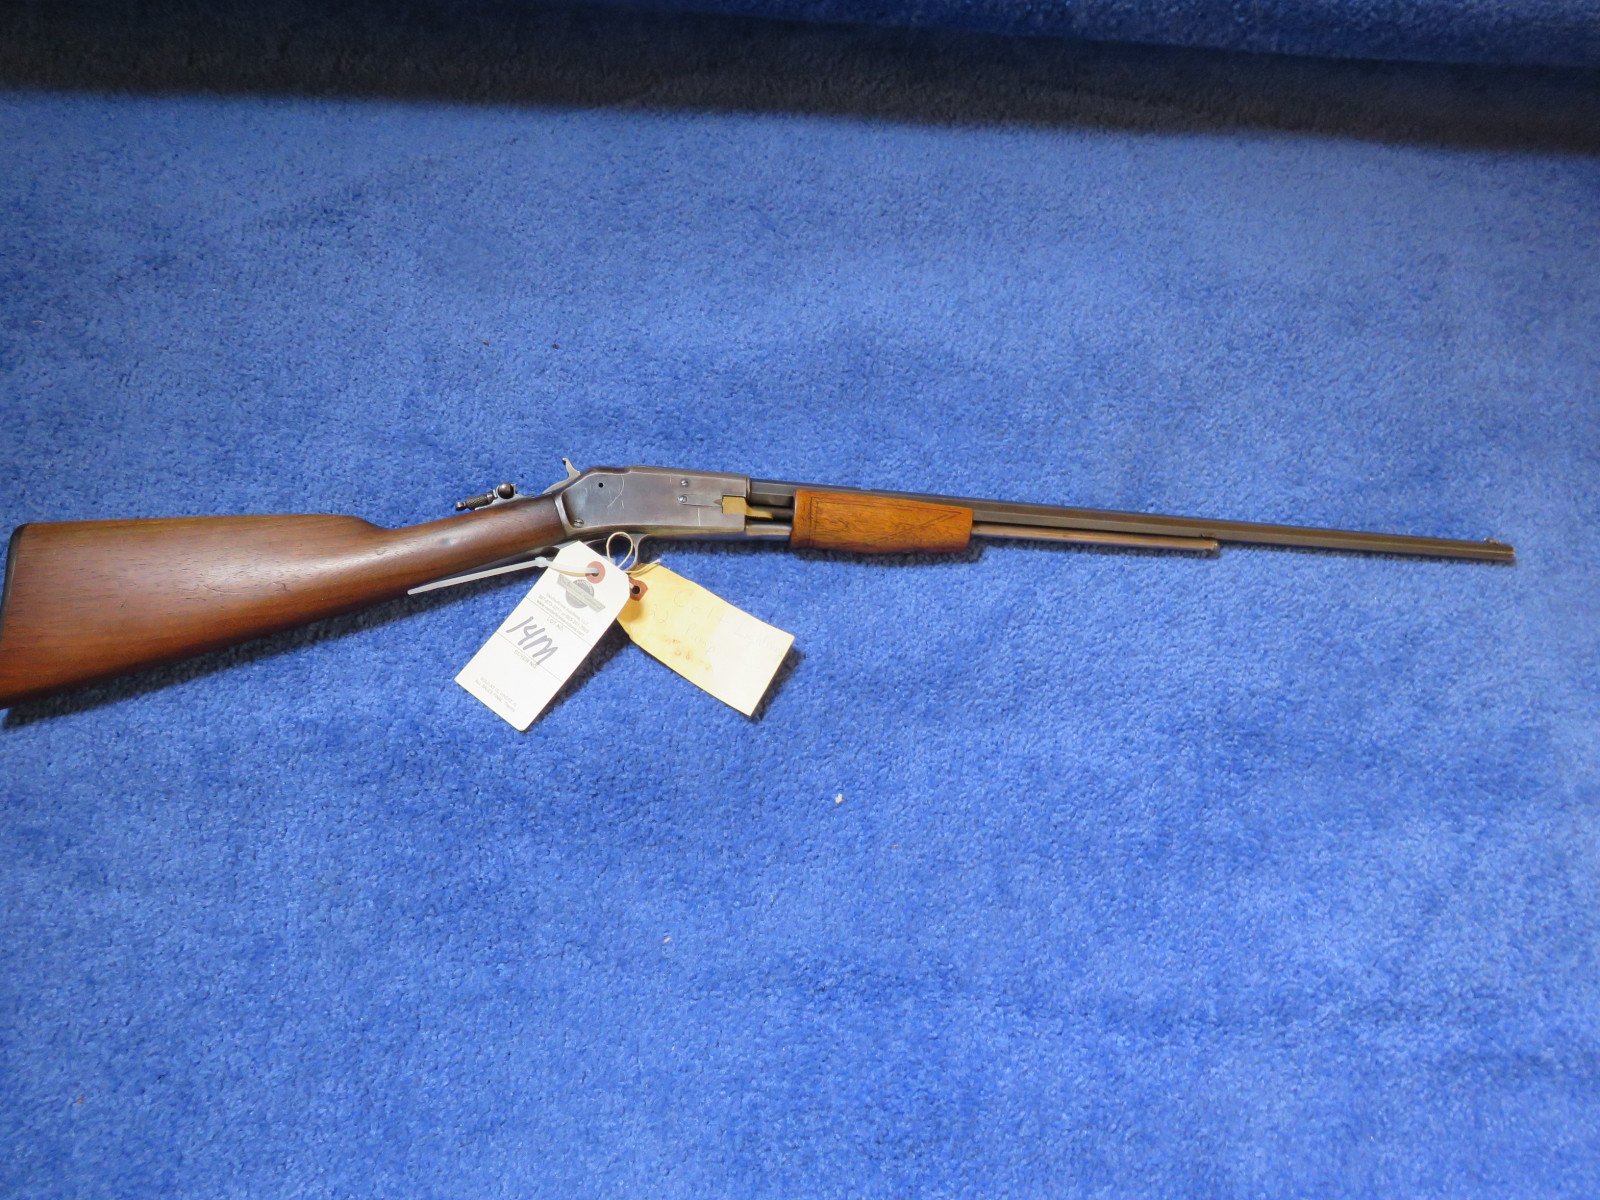 Colt Lightning .22 Rifle - Image 1